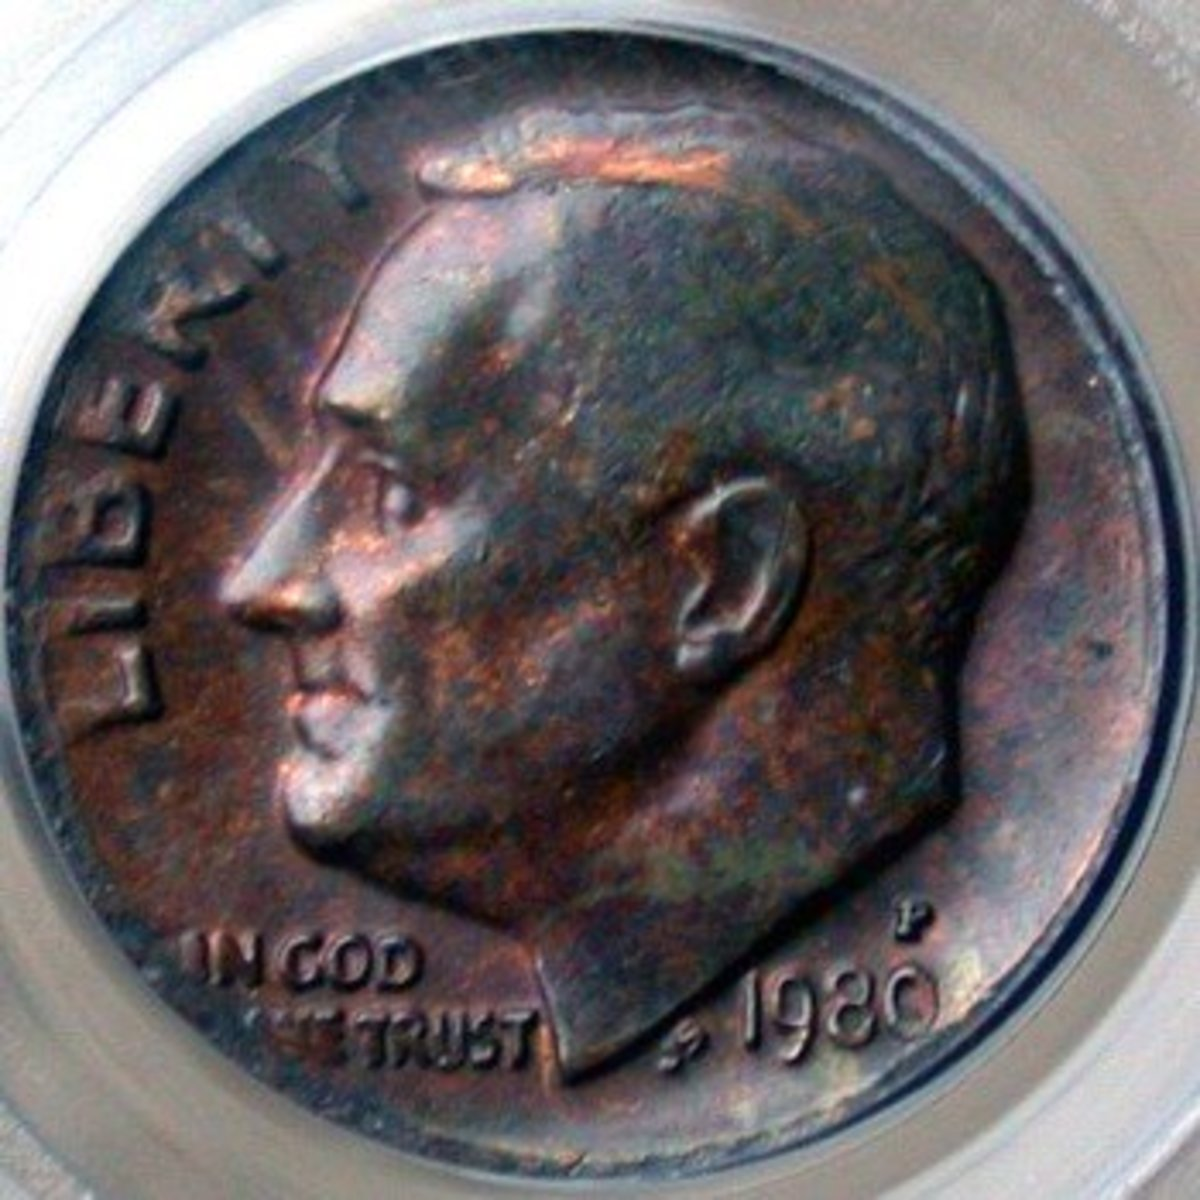 1980 Roosevelt Dime Error Missing Clad Layer.